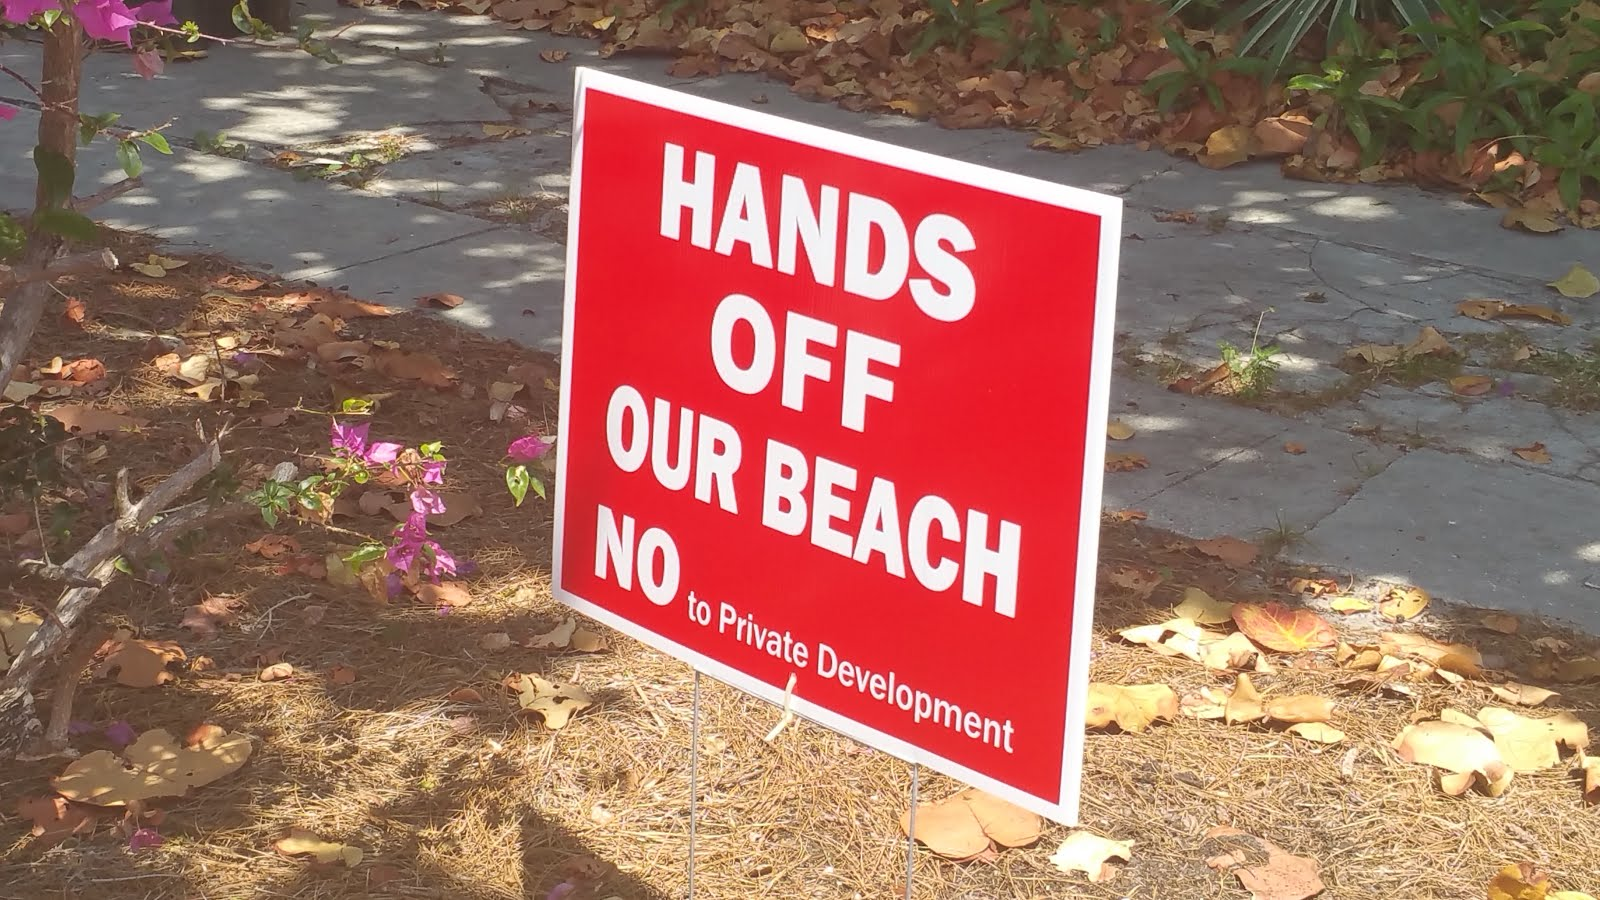 Nonsense. Our Beach is never 'For Sale'. Just more silliness in LDub.